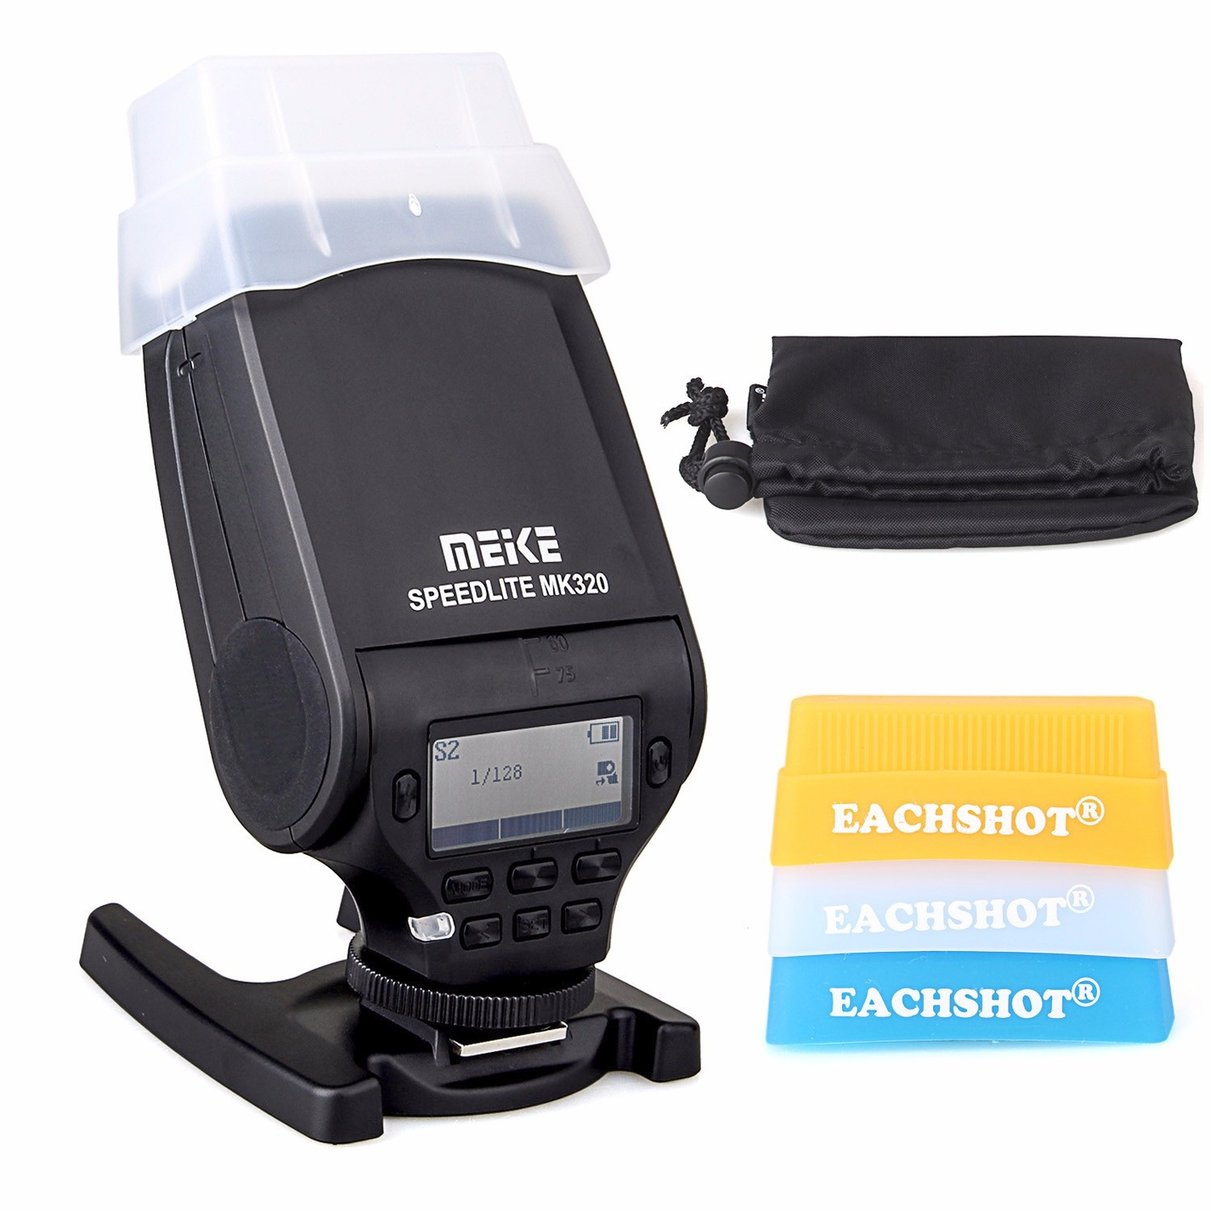 MEIKE MK-320 for Panasonic TTL Flash Speedlite for Panasonic <font><b>Lumix</b></font> DMC GF7 GM5 GH4 GM1 <font><b>GX7</b></font> G6 GF6 GH3 G5 GF5 GX1 GF3 G3 image